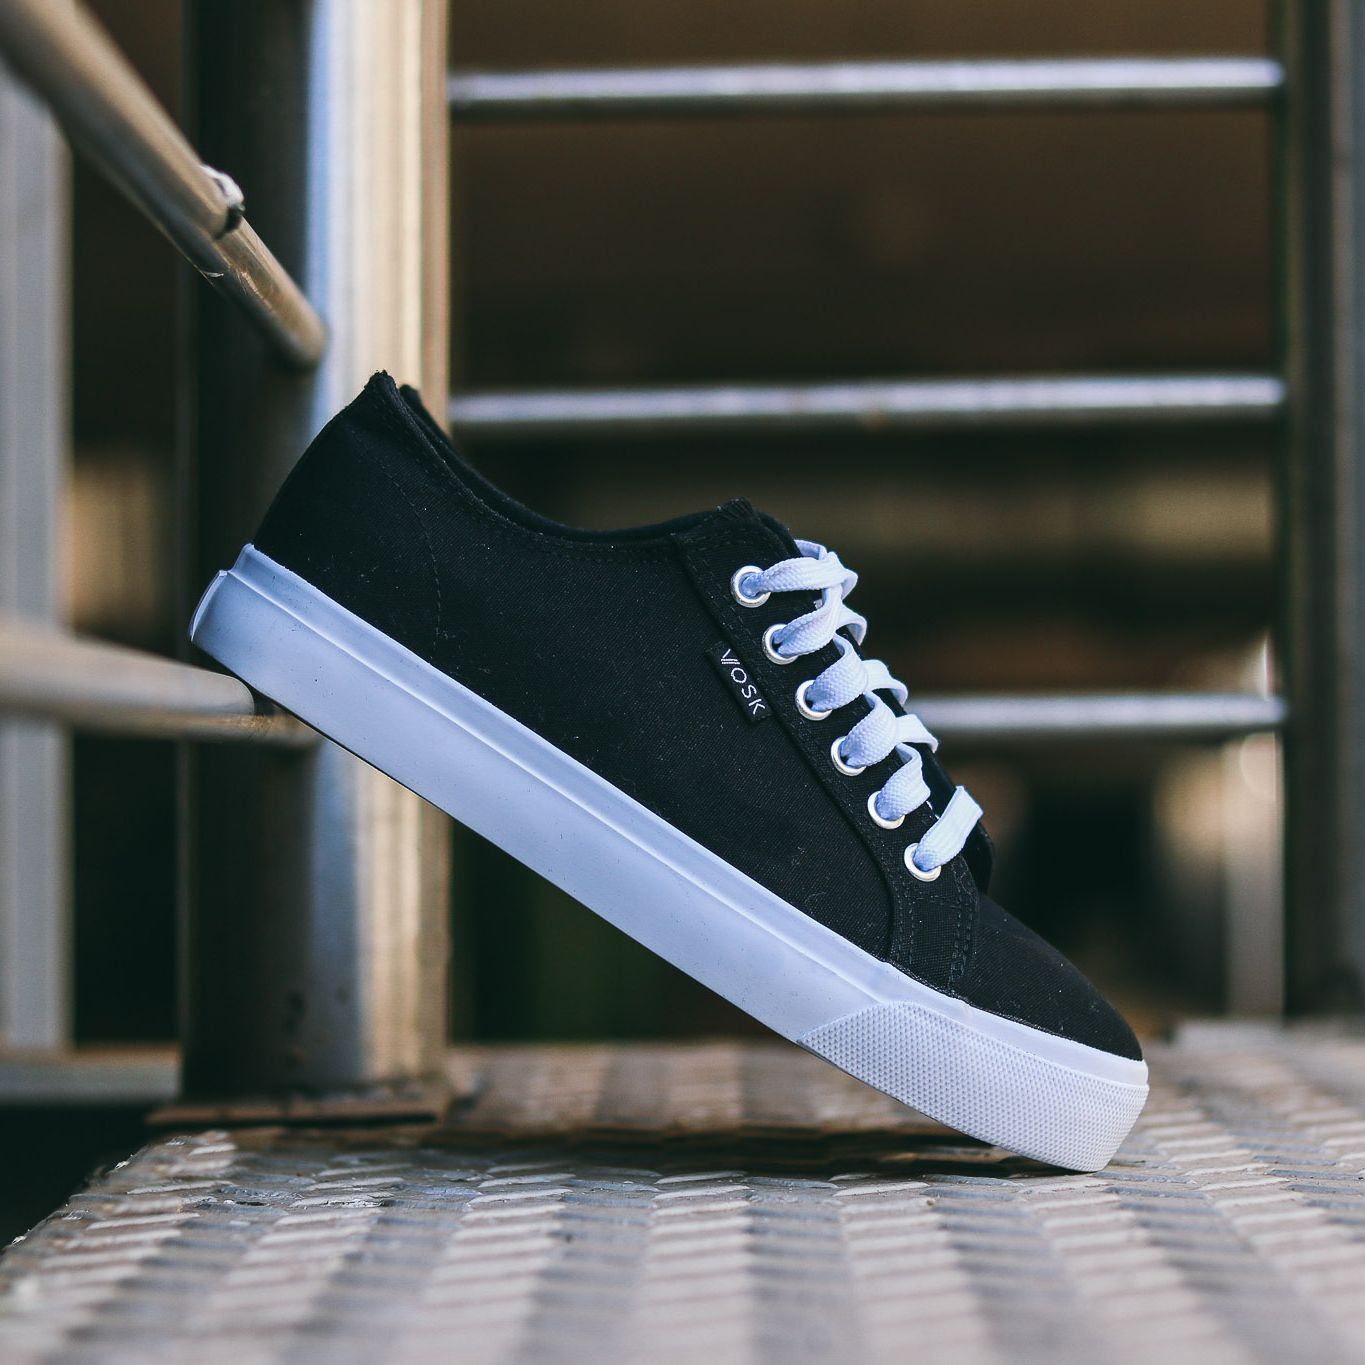 The Authentic, VOSK original sneaker design, is a unisex simple low top shoe, lace-up with durable canvas upper, metal eyelets and our original Imprint Africa outsole. Grab your travel bags and get ready to #imprintafrica wherever you go. South Africa footwear brand.